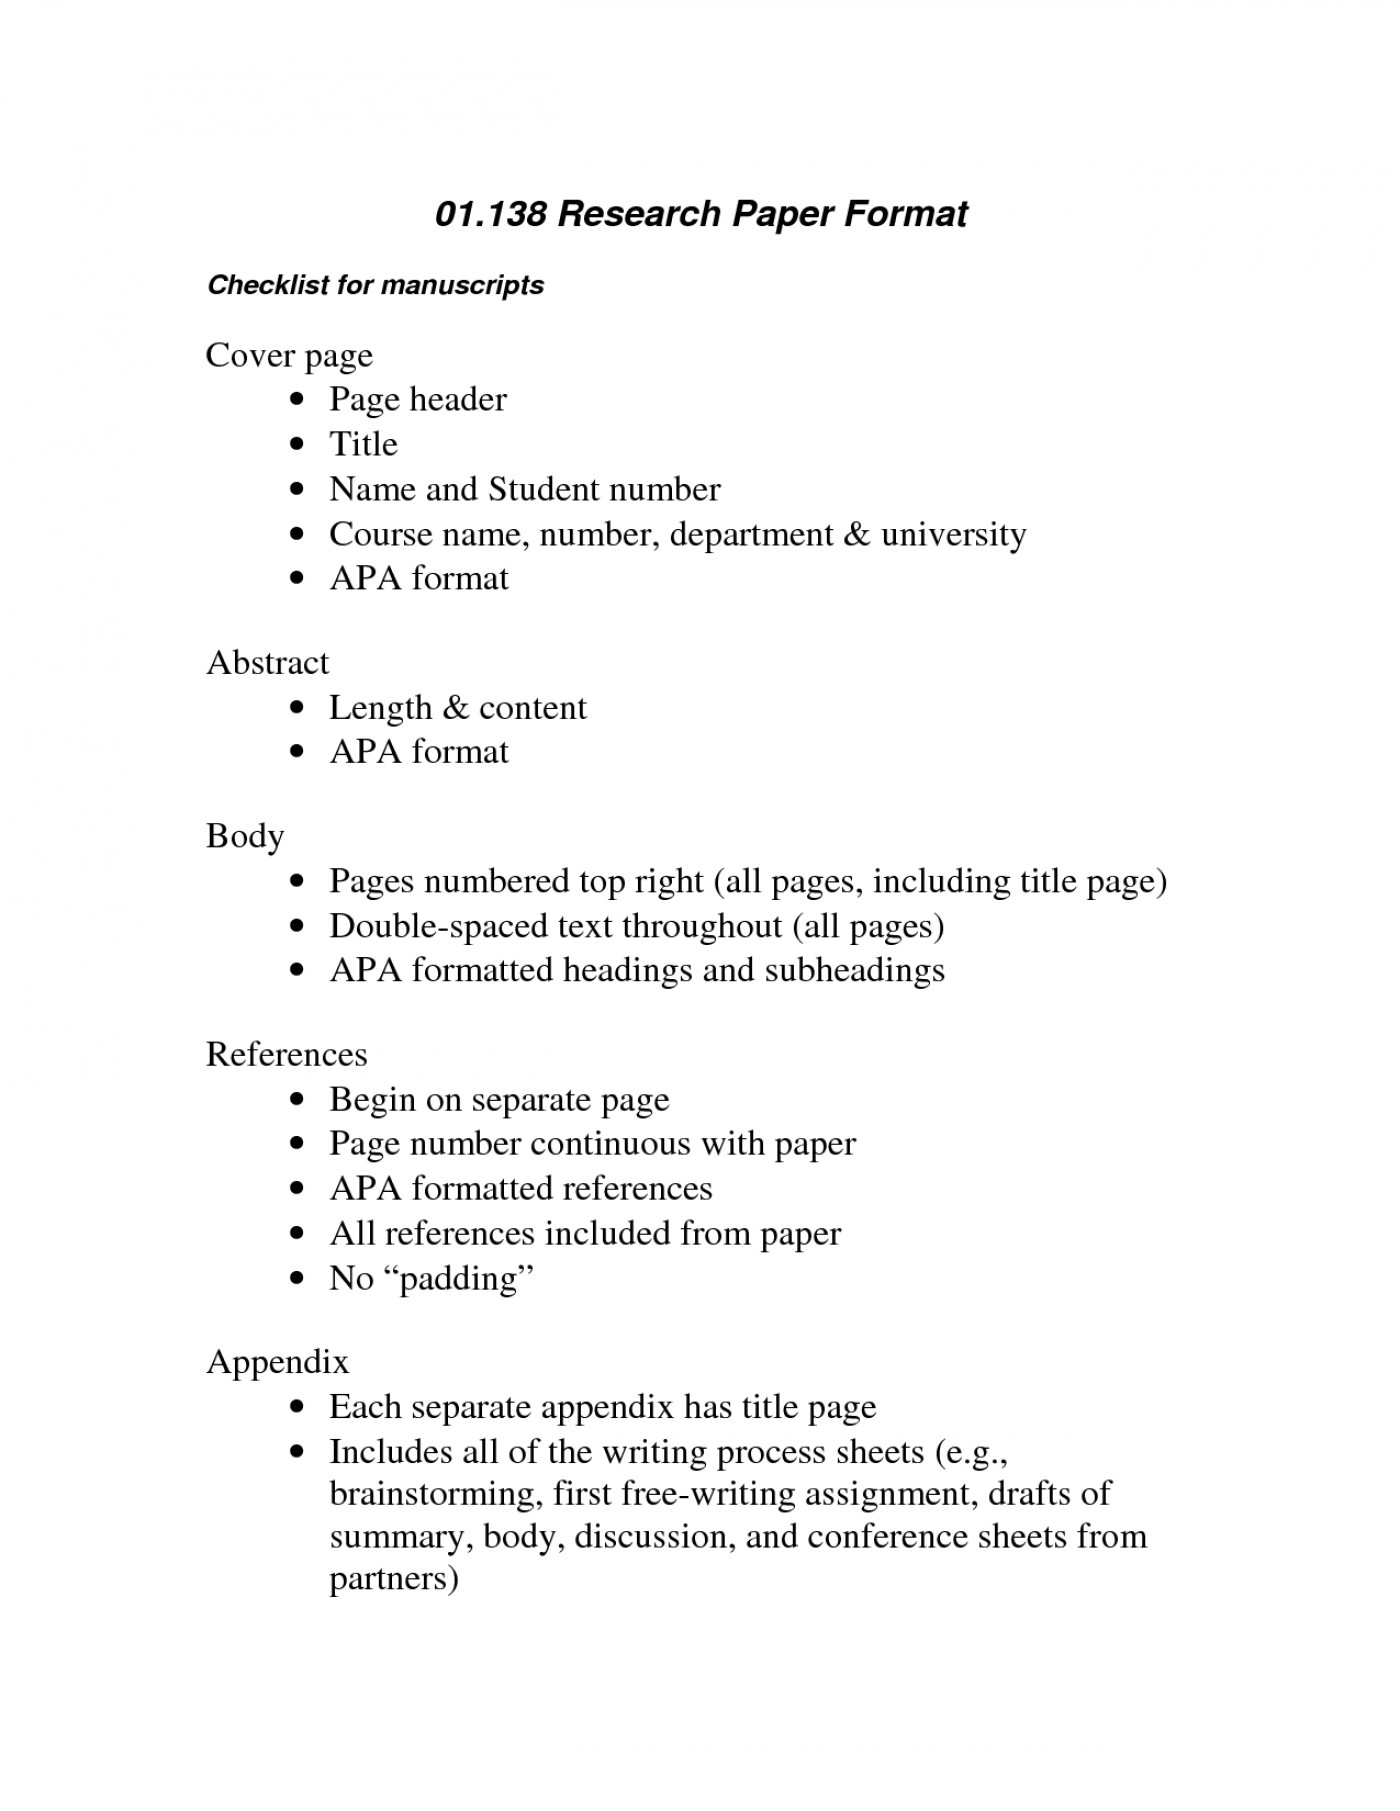 004 Psychology Research Paper Outline Apa Impressive 1400